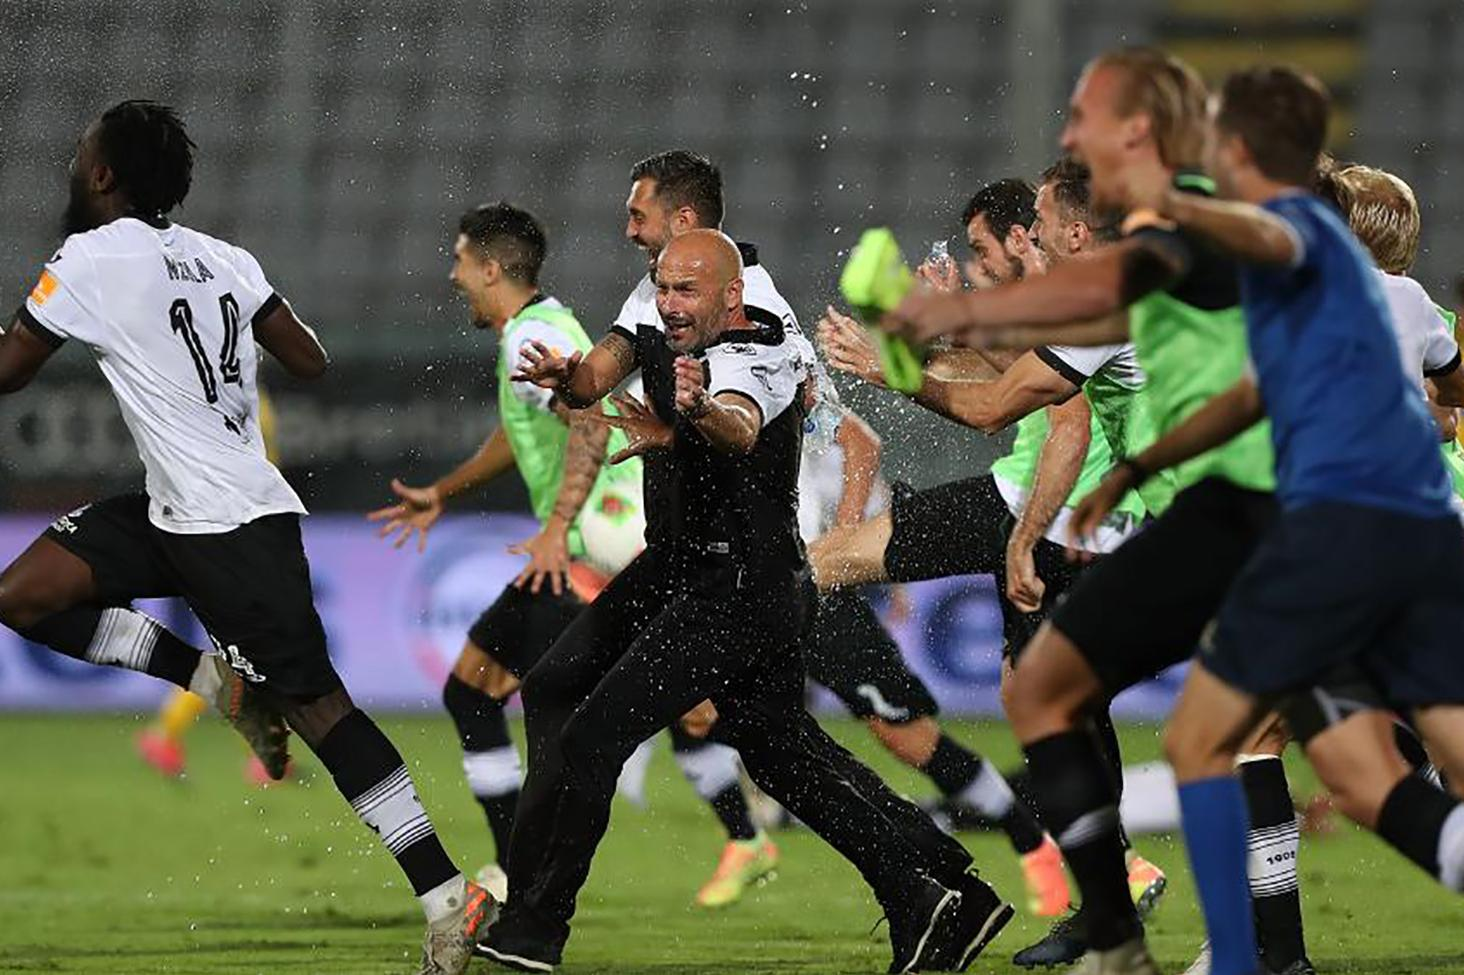 Watch: Spezia soar into Serie A for first time in 114-year history